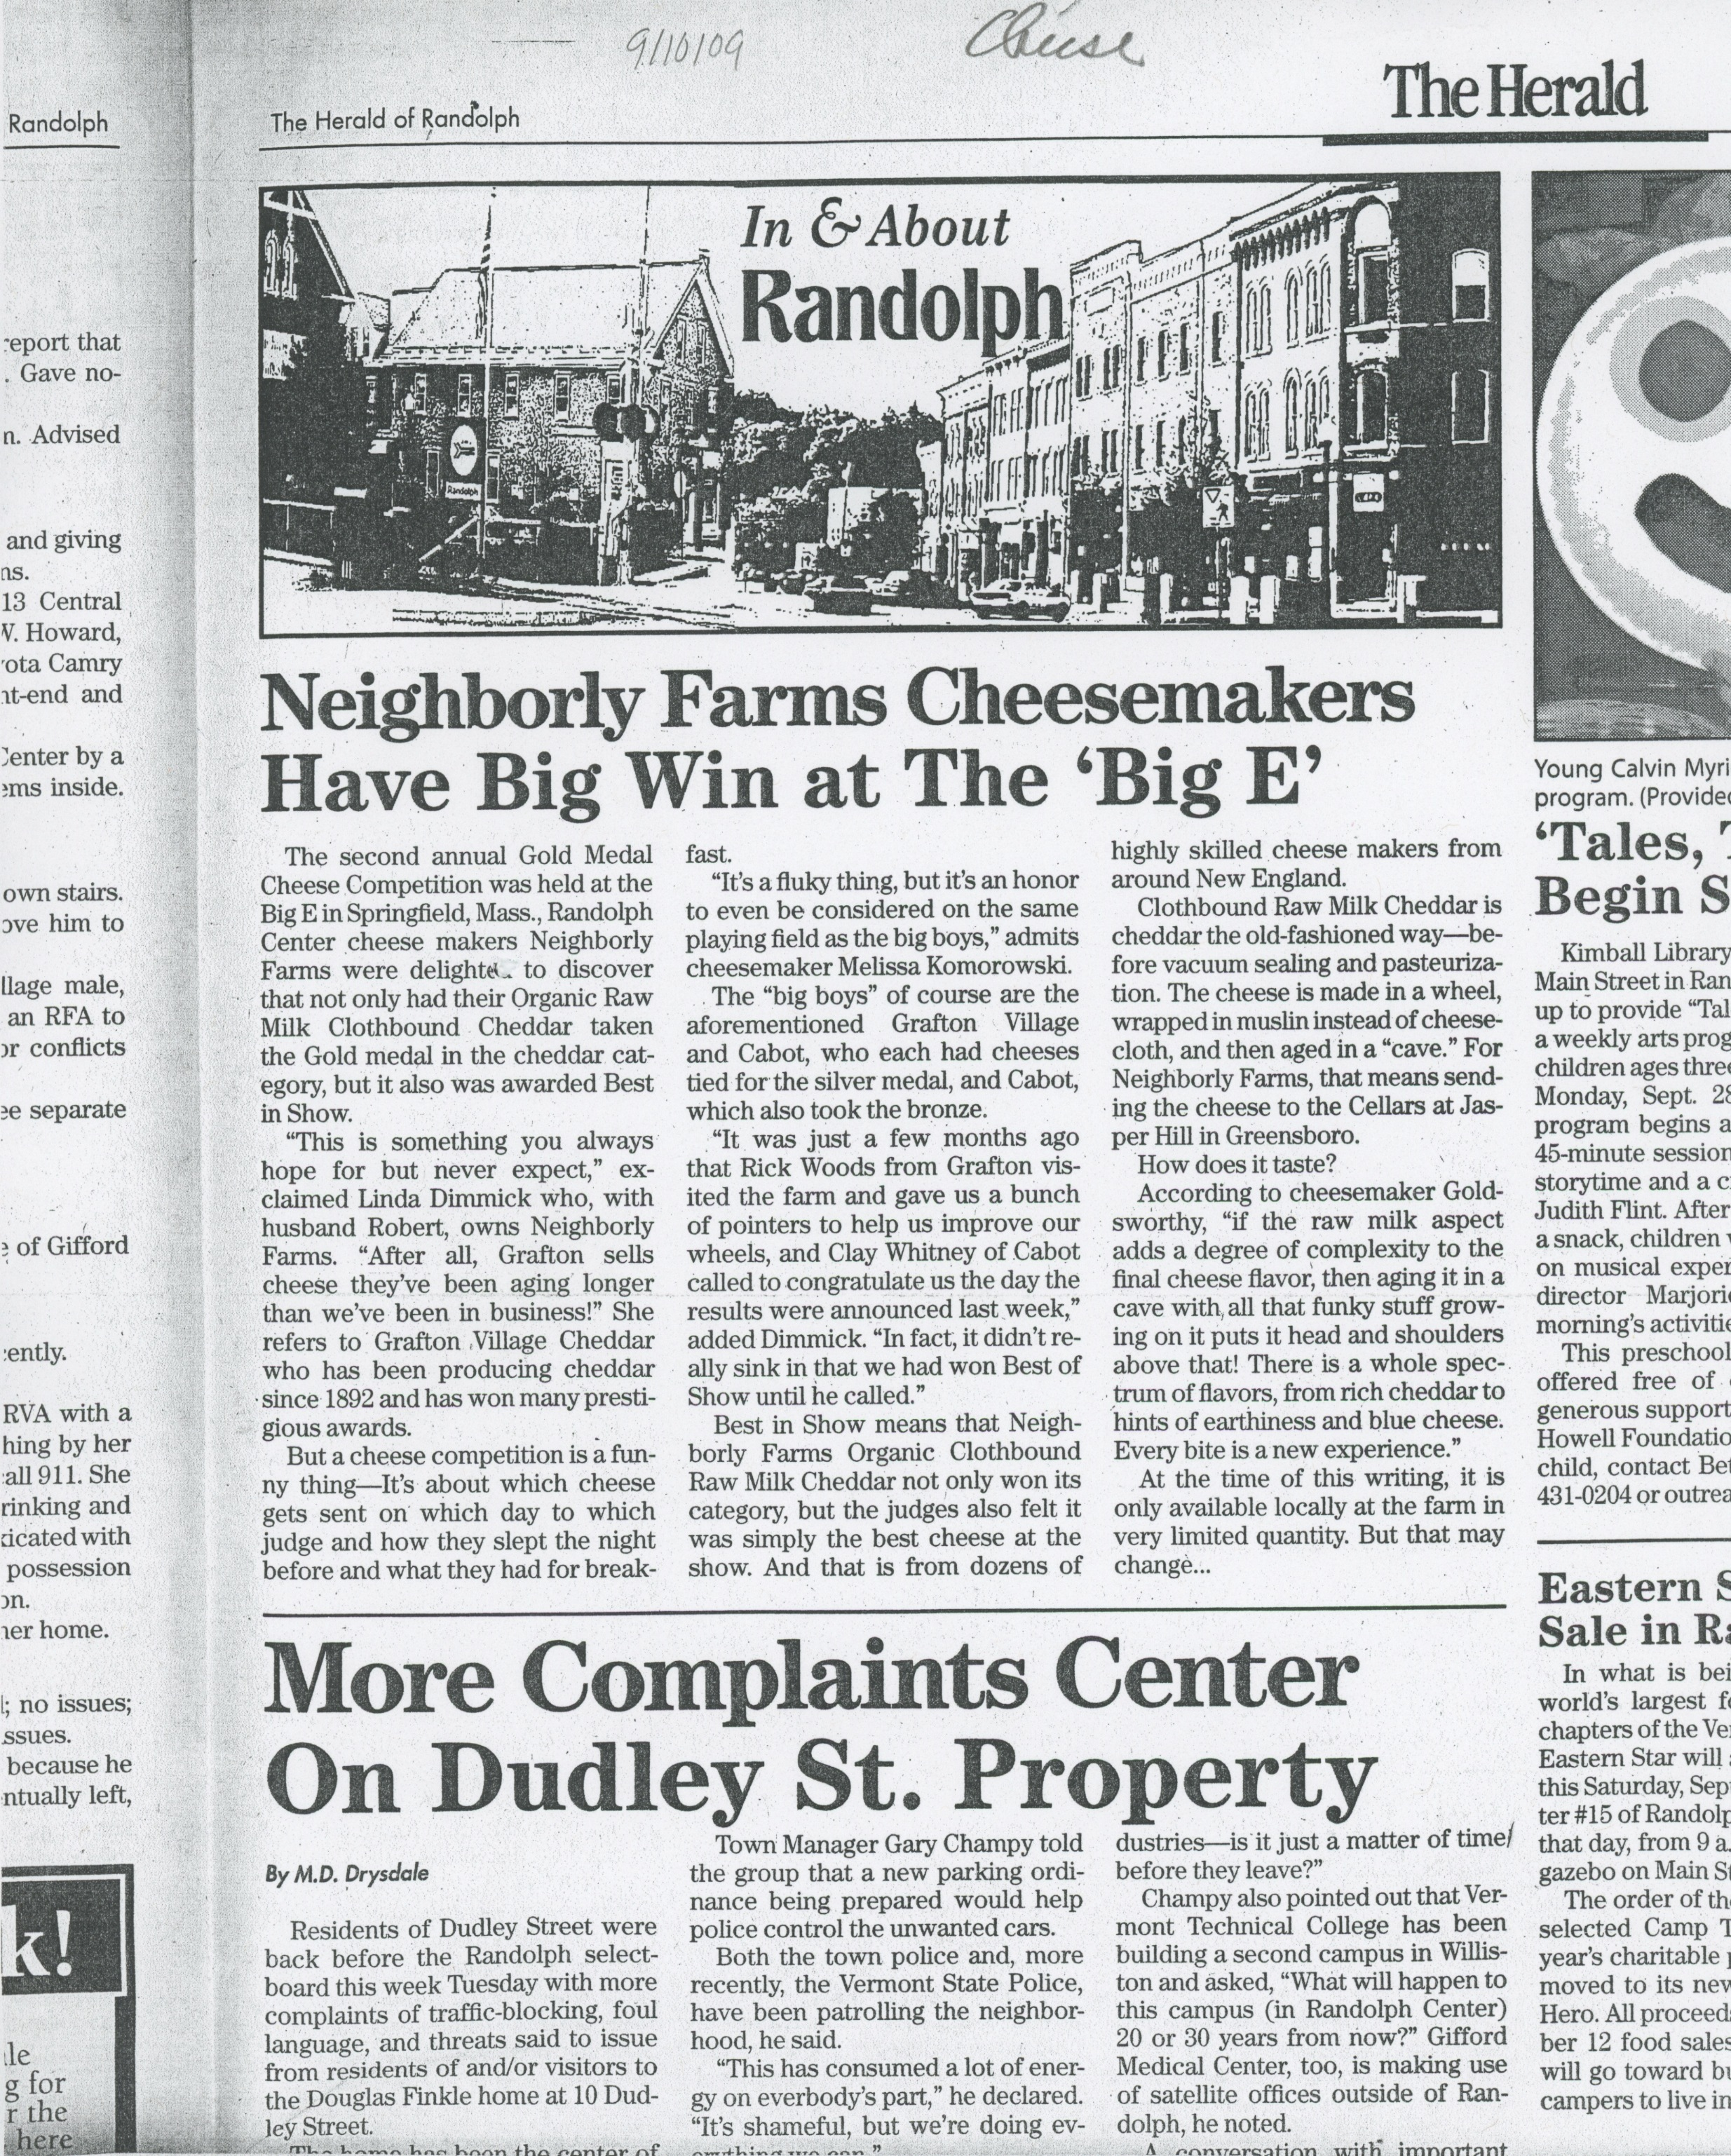 """Neighborly farms cheesemakers have big win at the 'Big E,'"" The Herald of Randolph, 2009"